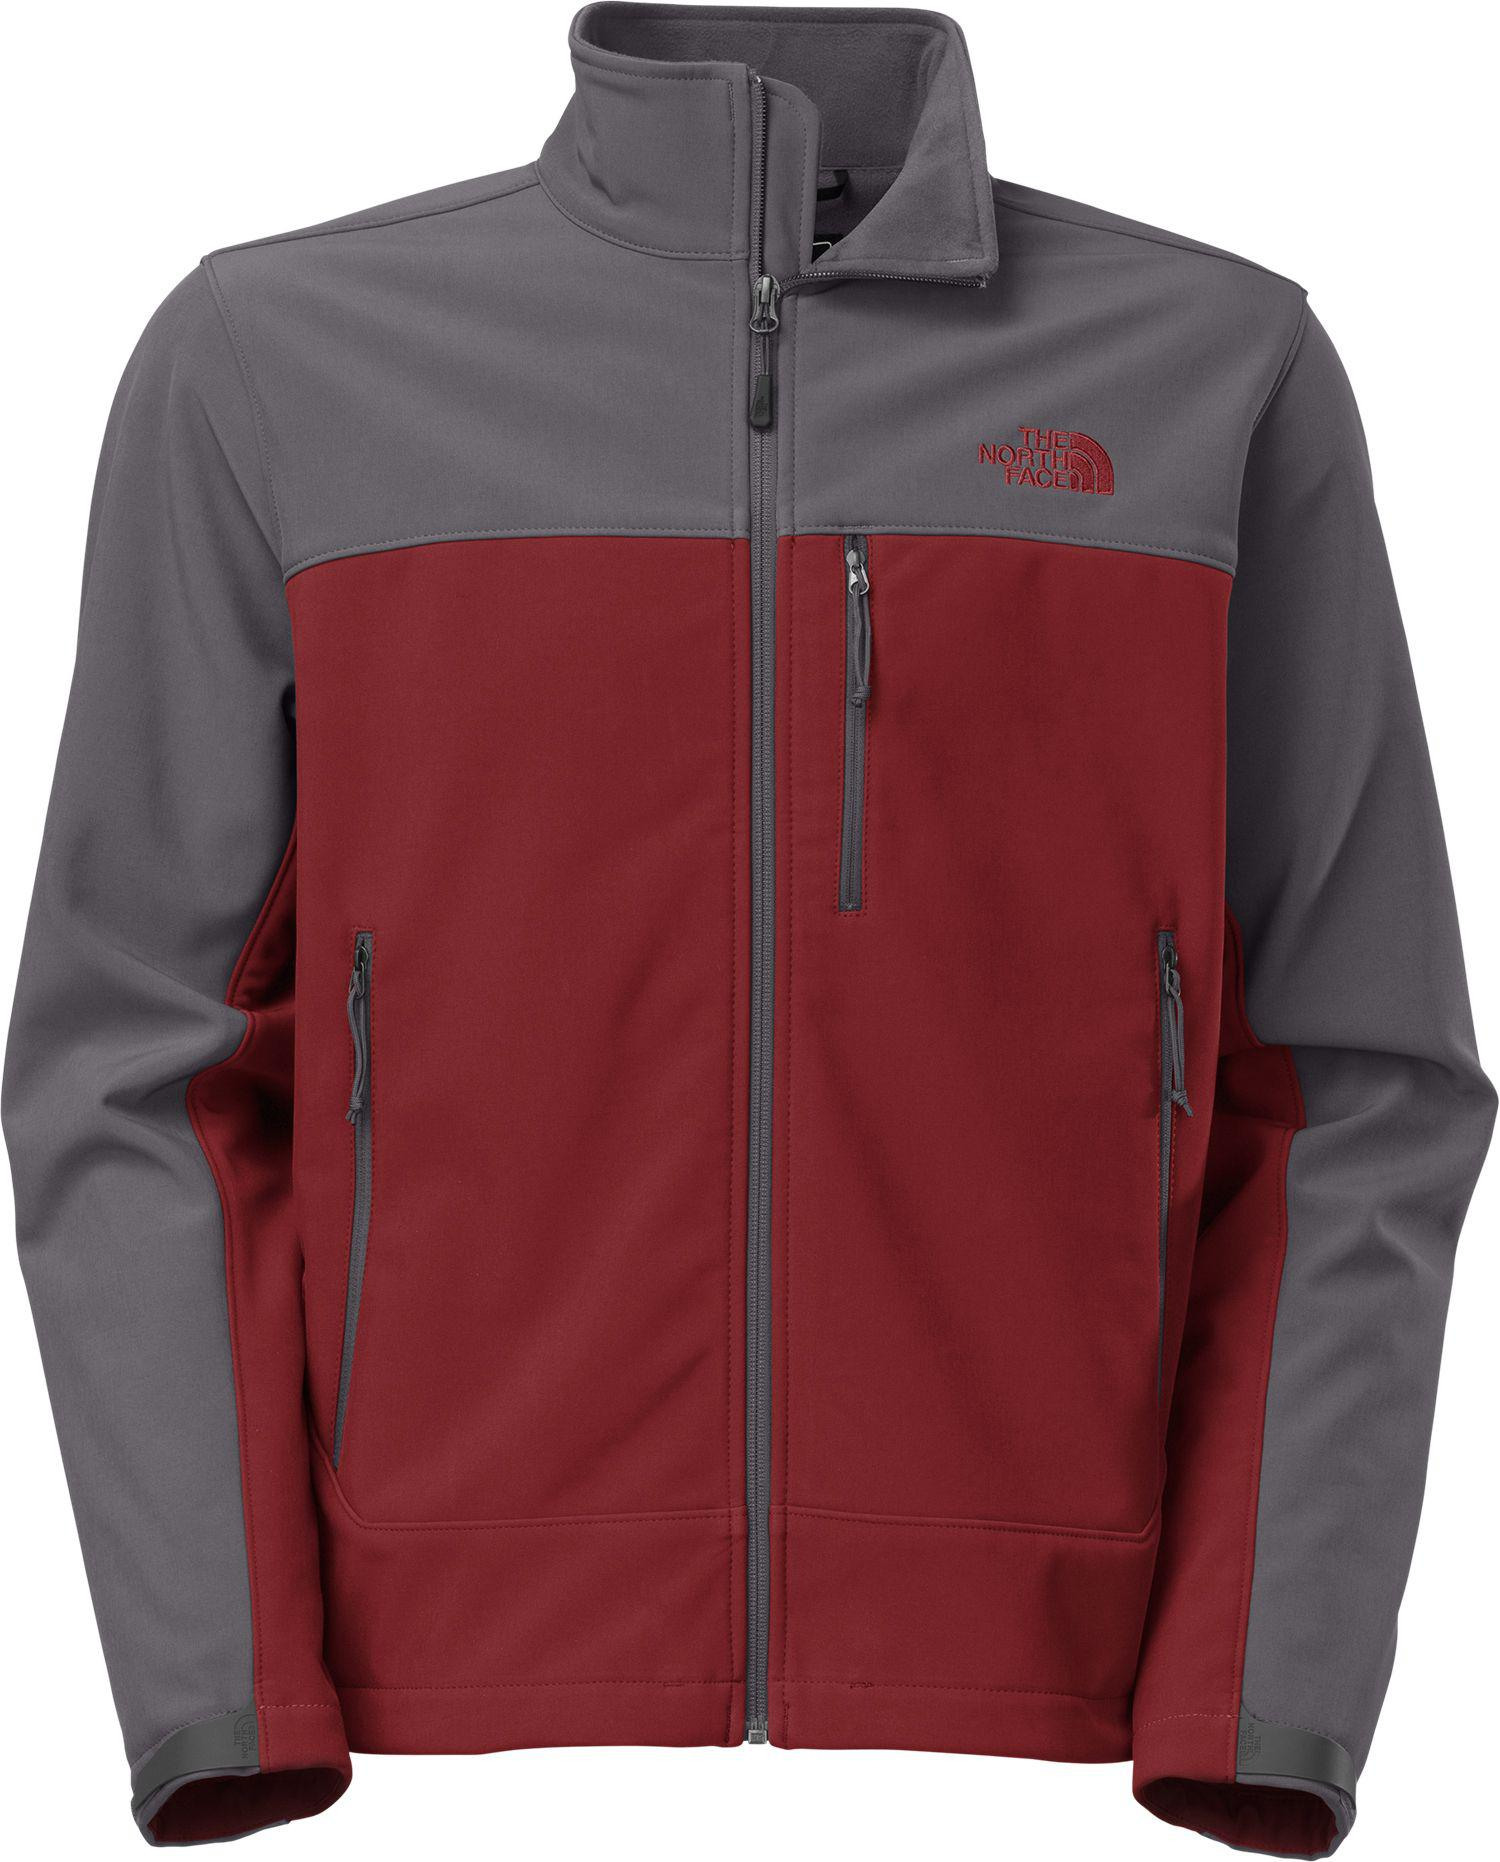 0d9f40ac5 The North Face - Red Apex Bionic Soft Shell Jacket for Men - Lyst